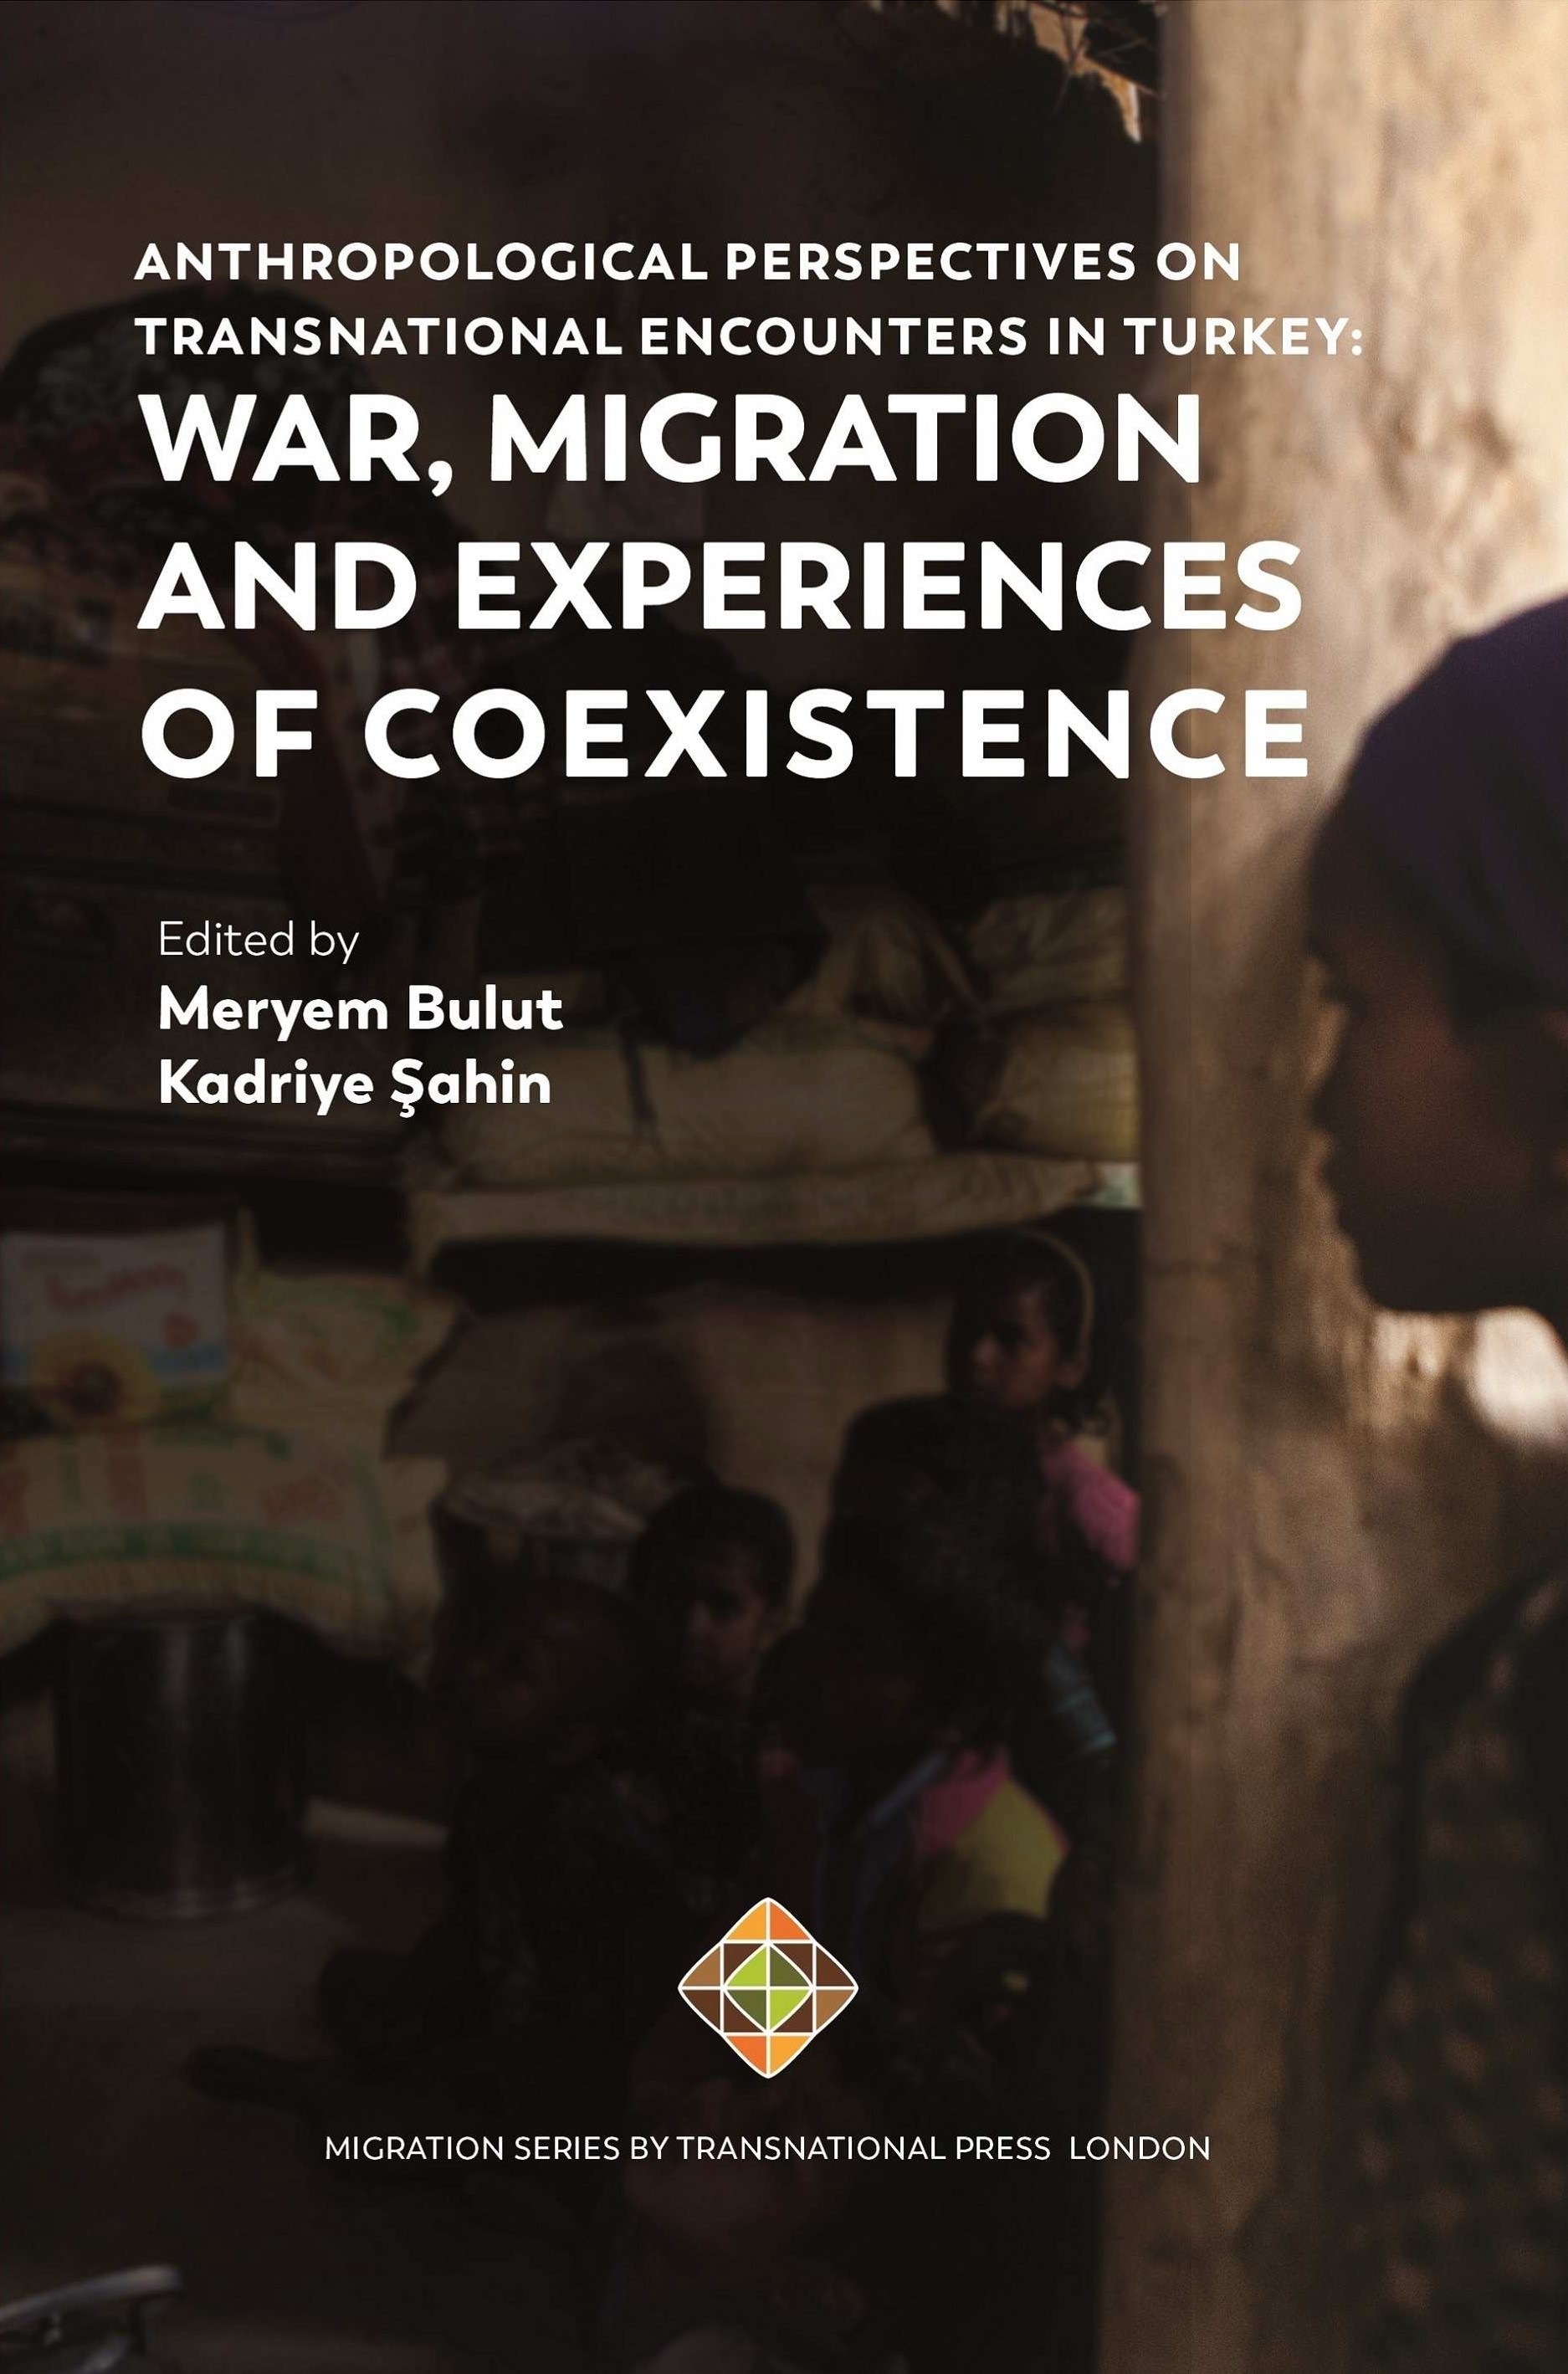 Anthropological Perspectives on Transnational Encounters in Turkey: War, Migration and Experiences of Coexistence